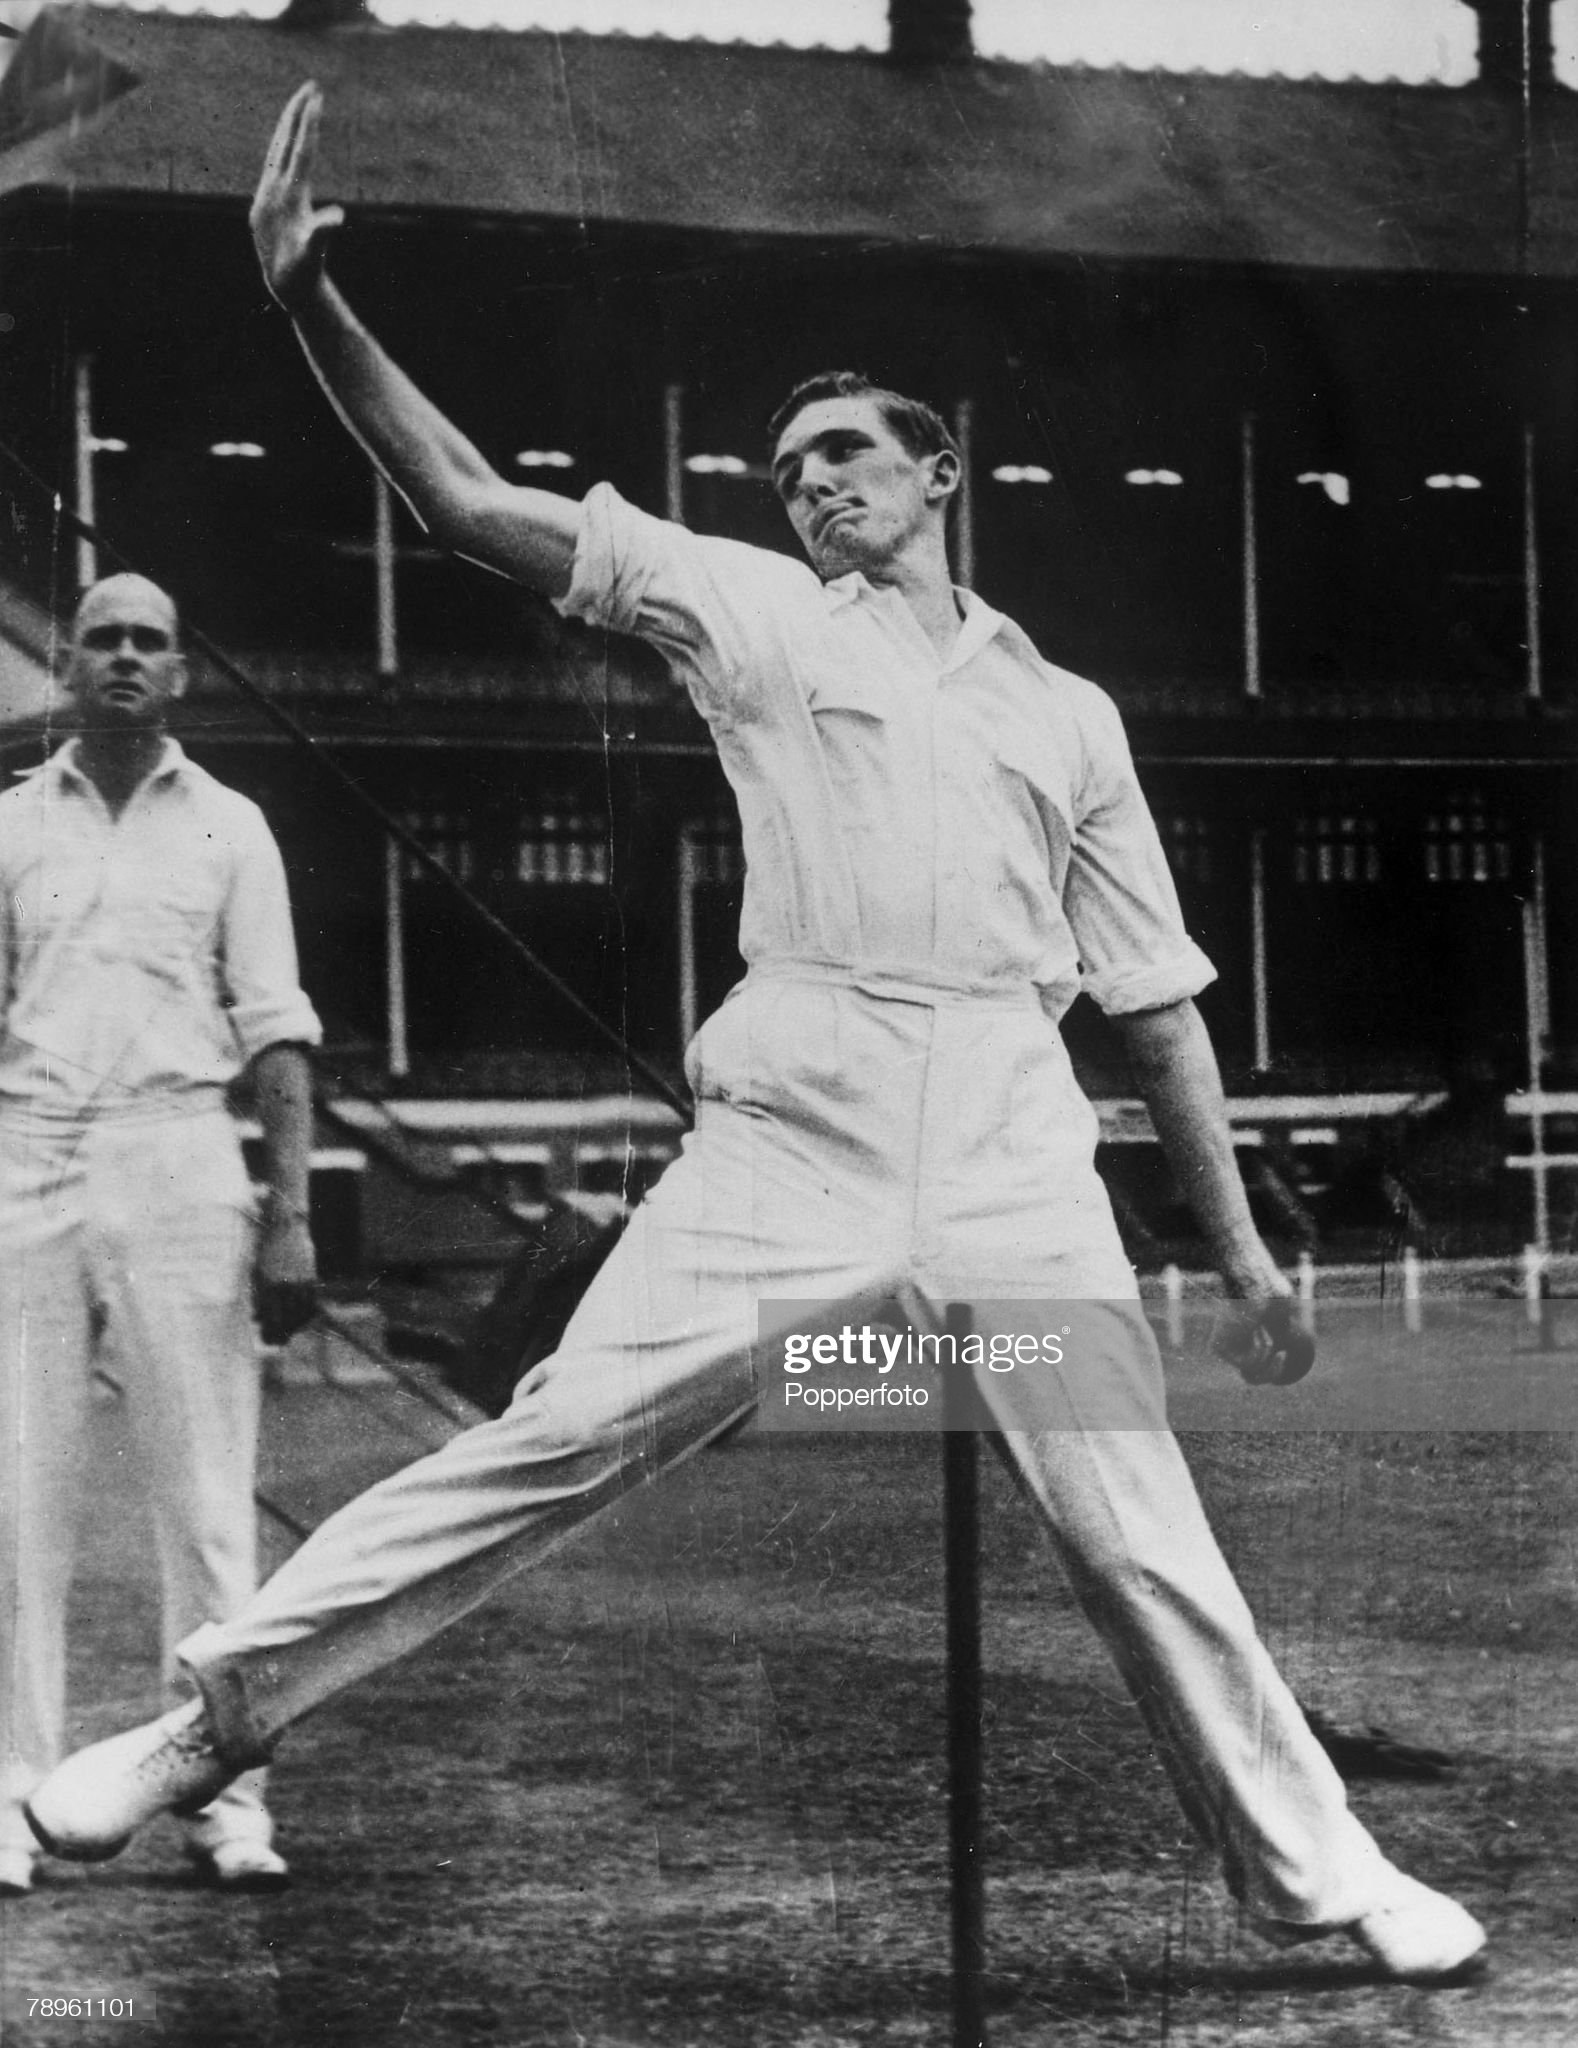 Sport. Cricket. pic: circa 1953. Alan Davidson, Australia all-rounder, who played for Australia in 44 Test matches between 1953-1963. : News Photo